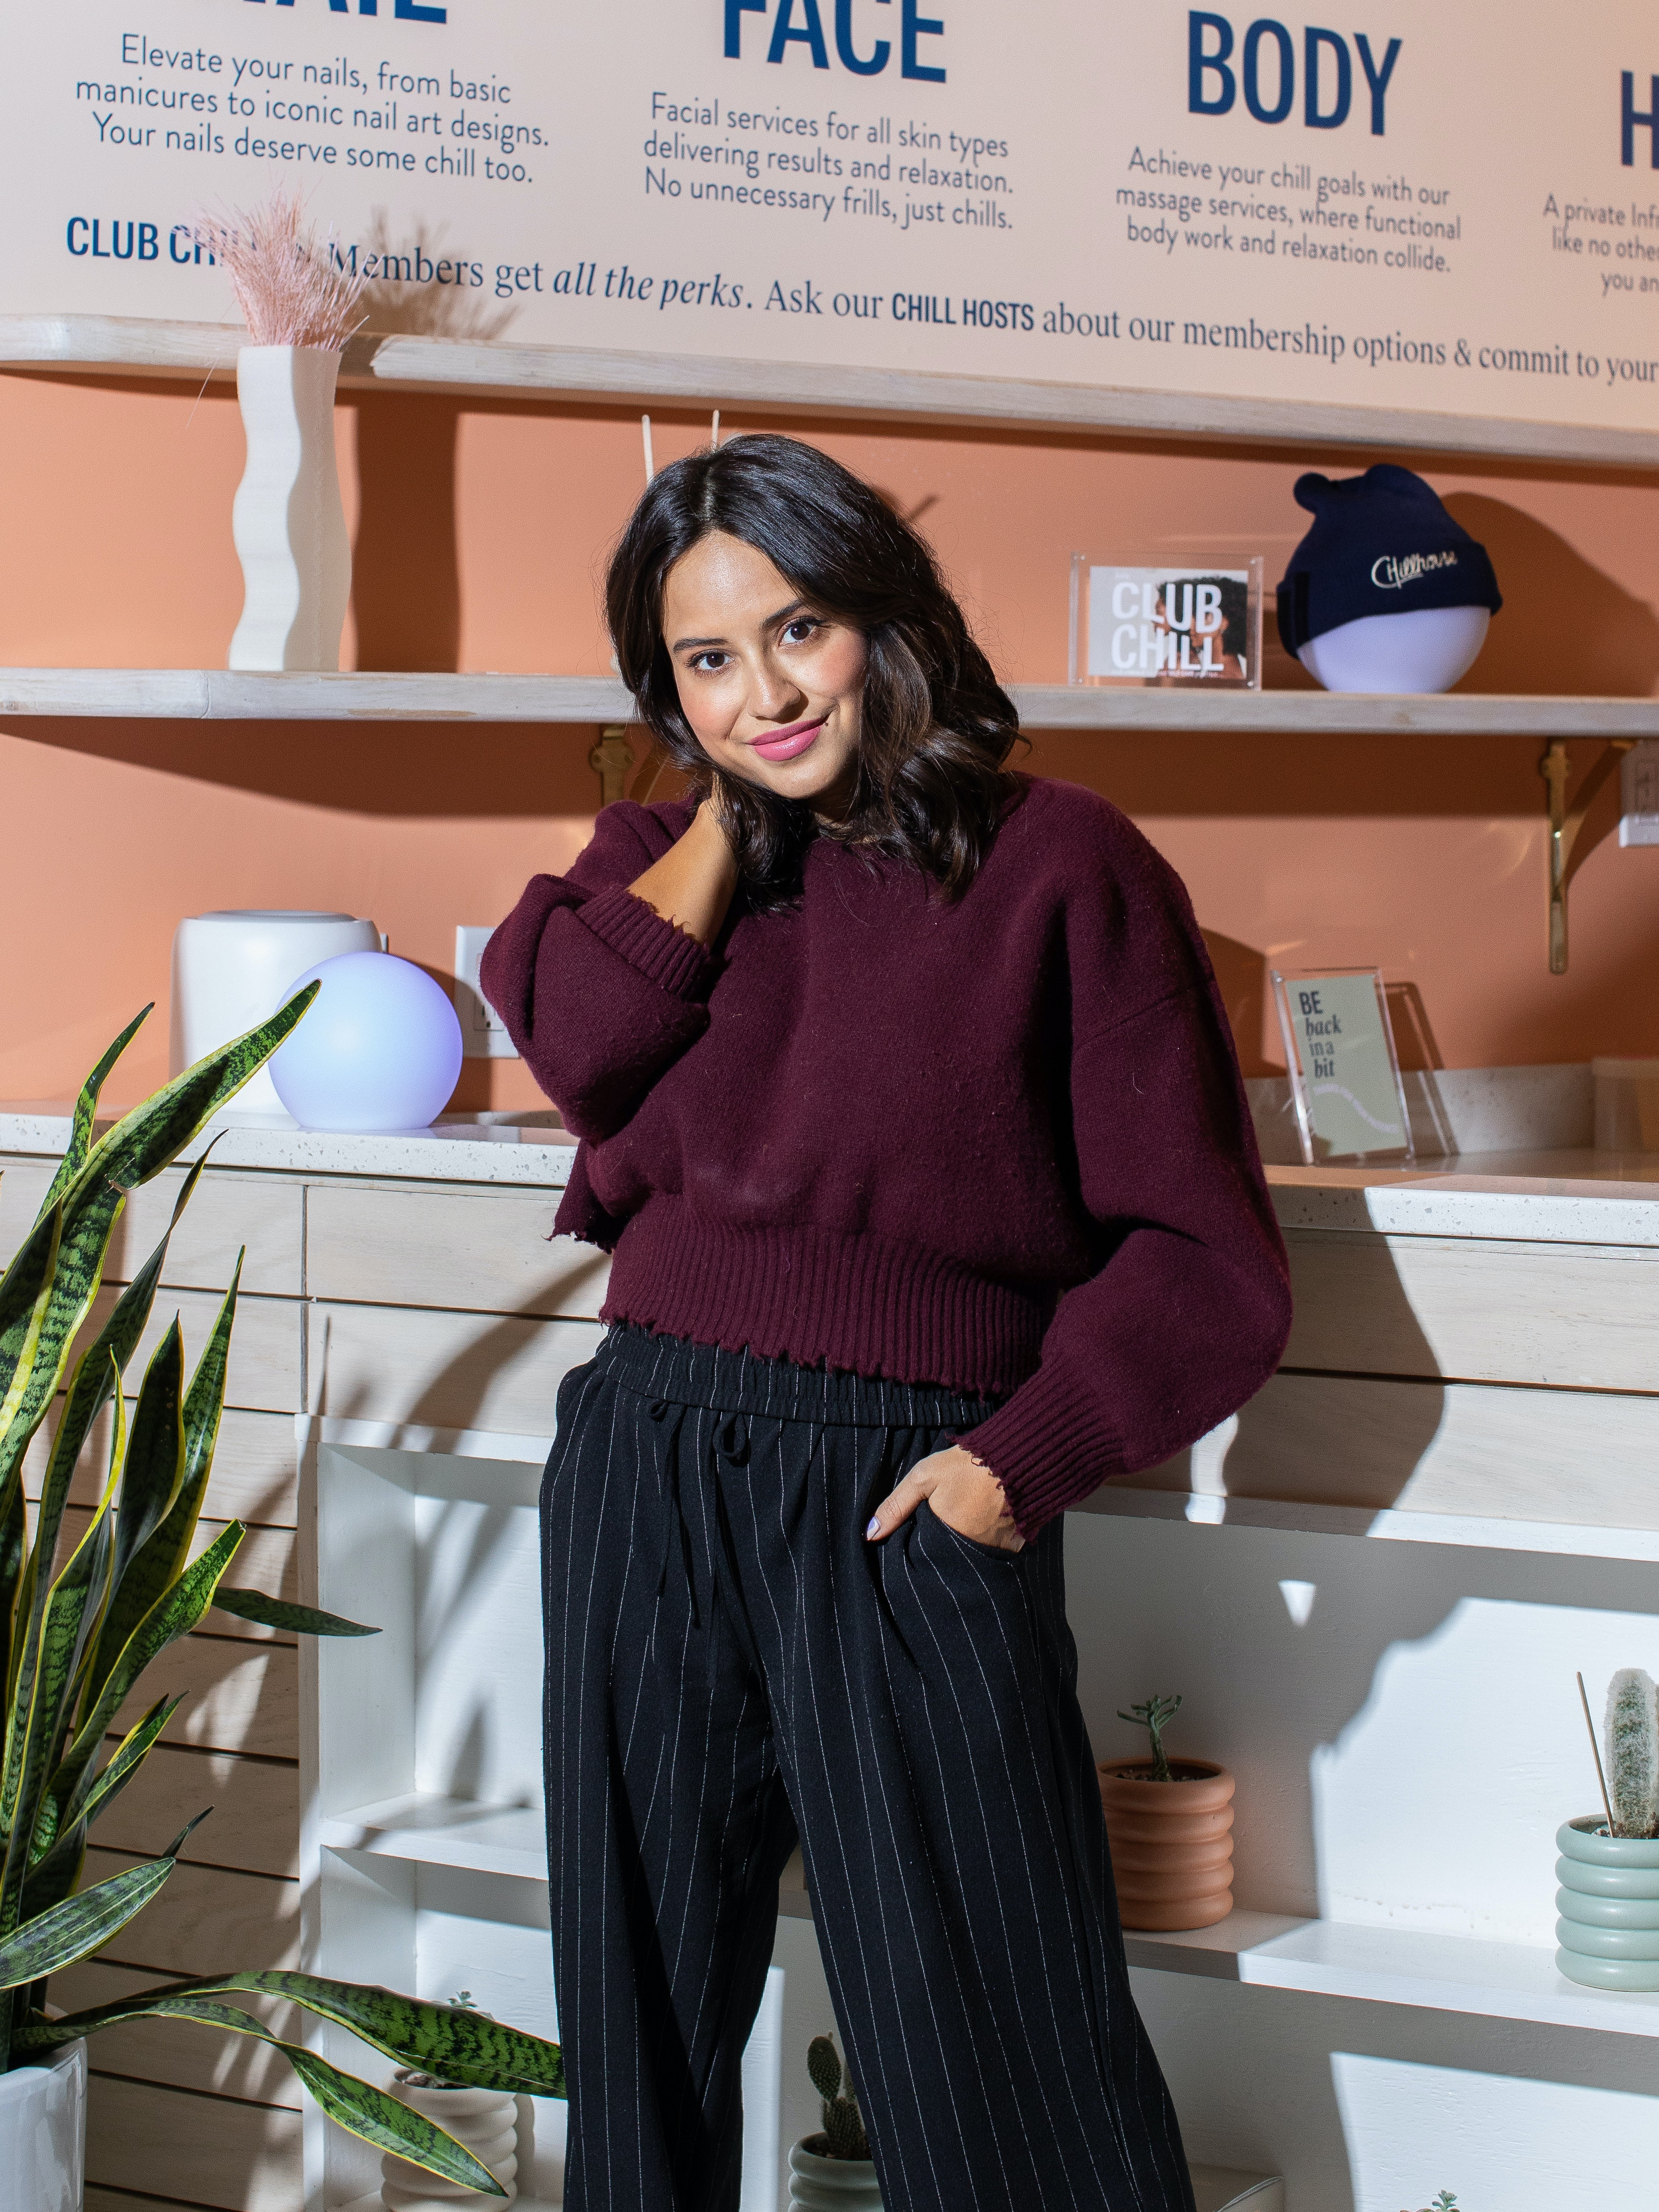 How Chillhouse Founder Cyndi Ramirez-Fulton Went From Building Bars to Launching Super Chill Spas